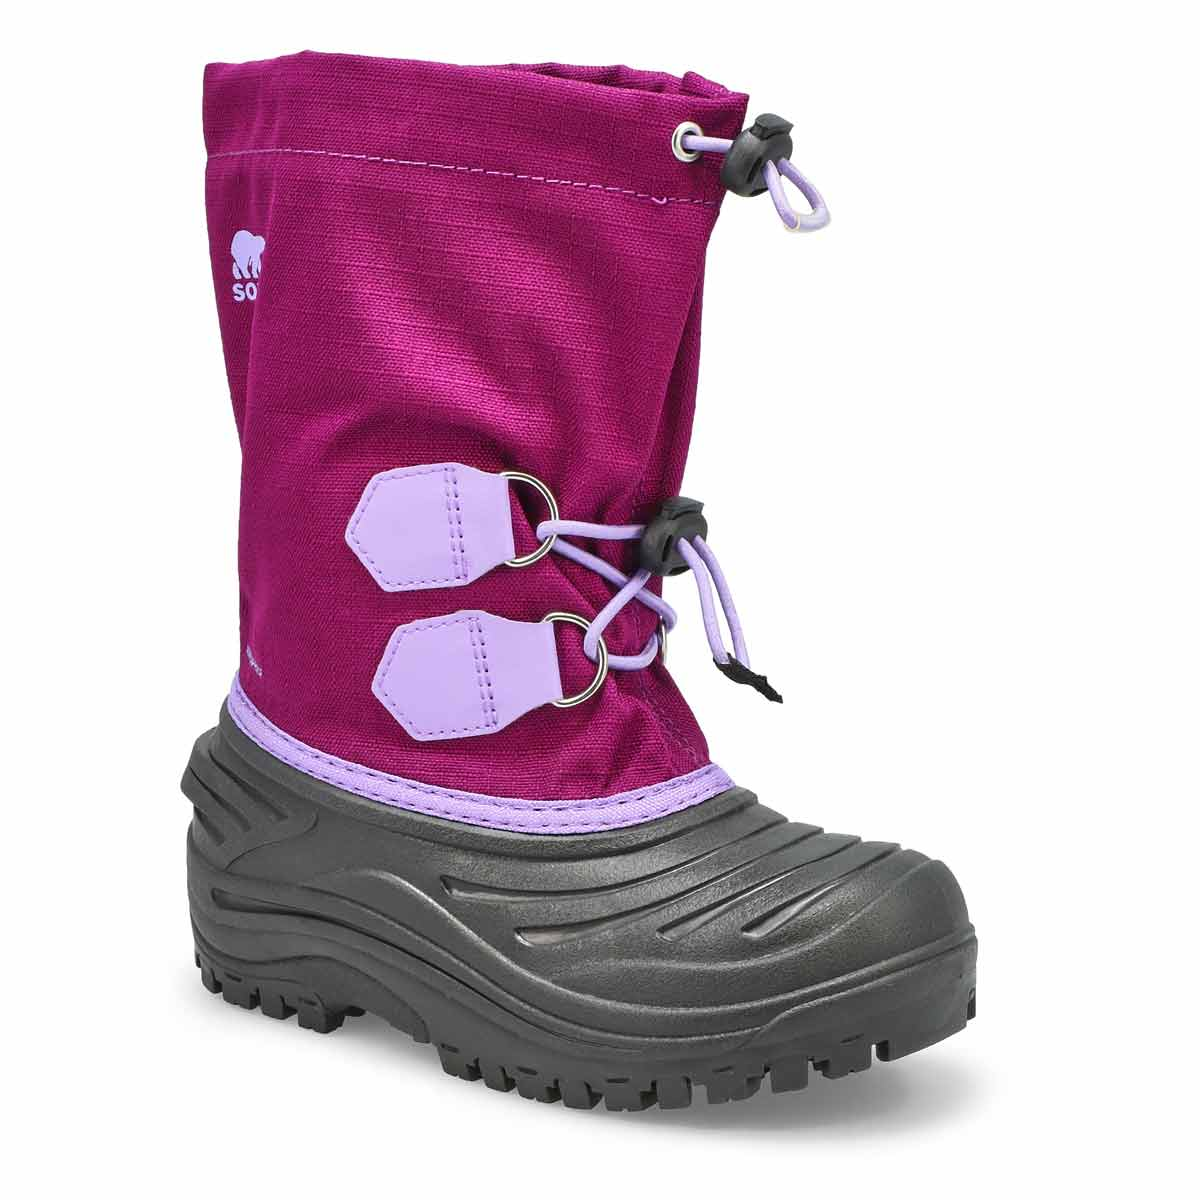 Girls' SUPER TROOPER  purple snow boots